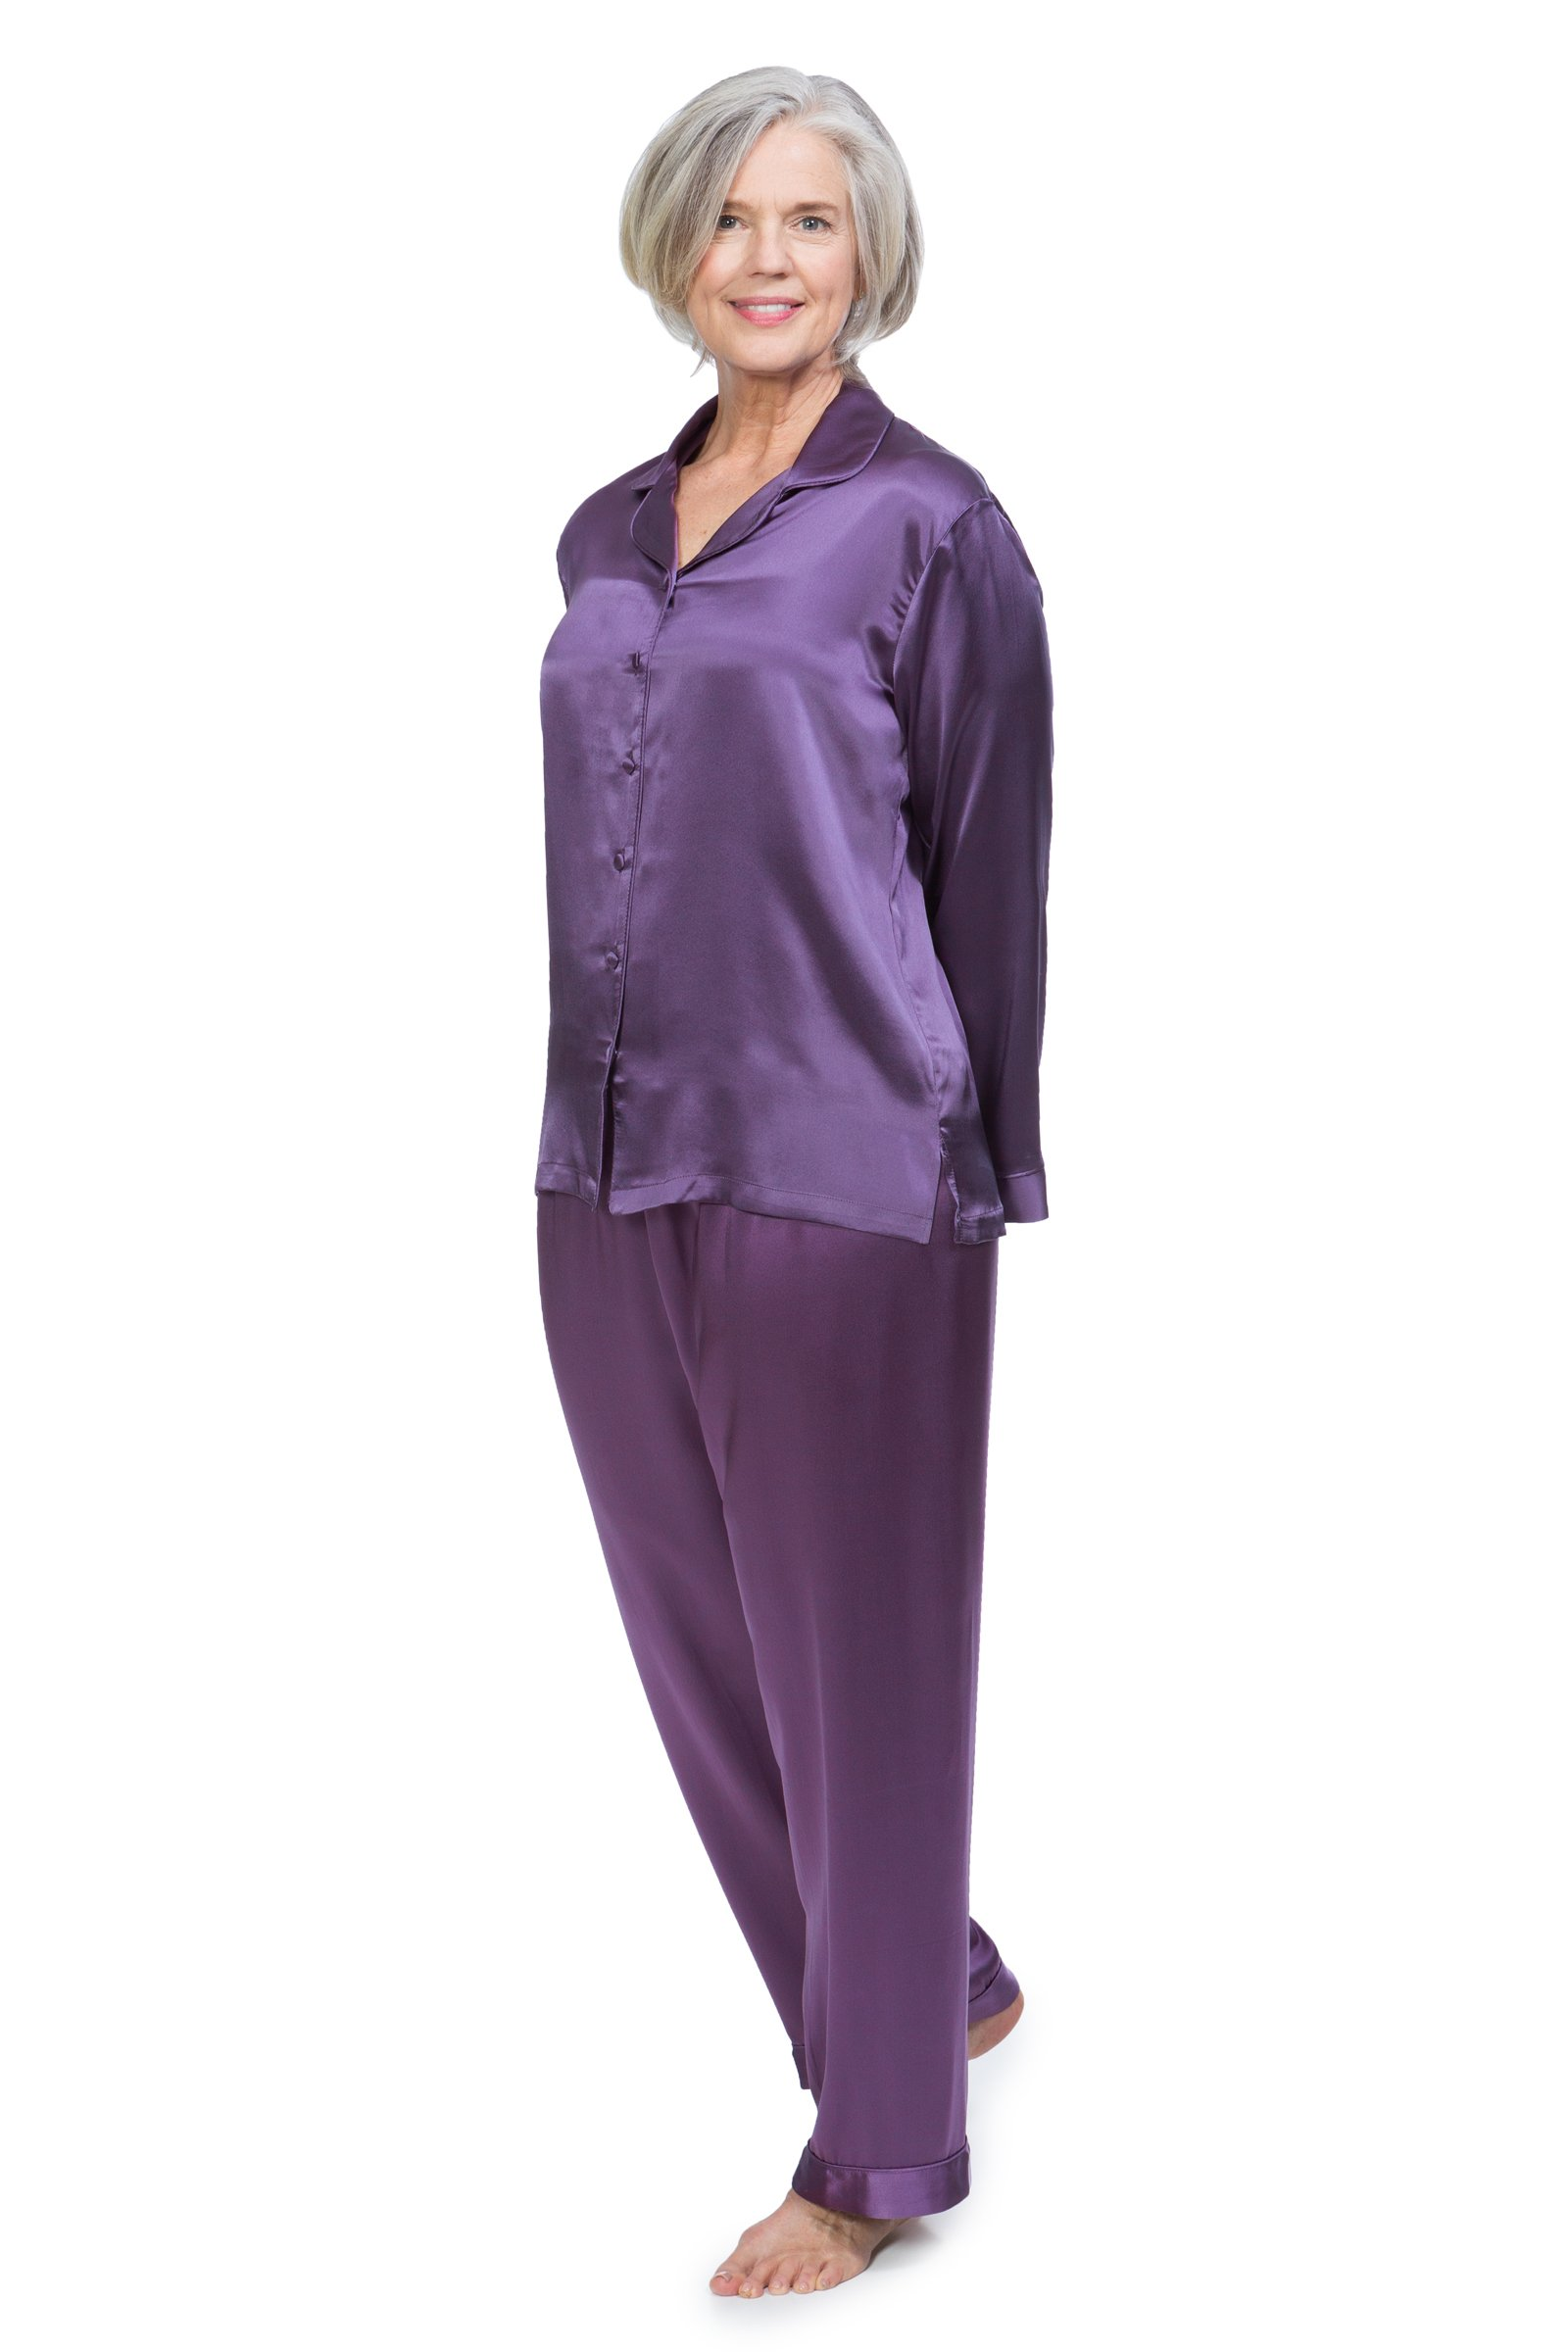 TexereSilk Women's 100% Silk Pajama Set - Luxury Sleepwear PJS (Morning Dew, Grape, X-Large/Petite) Popular Gifts For Mom Sister Wife WS0001-GRP-XLP